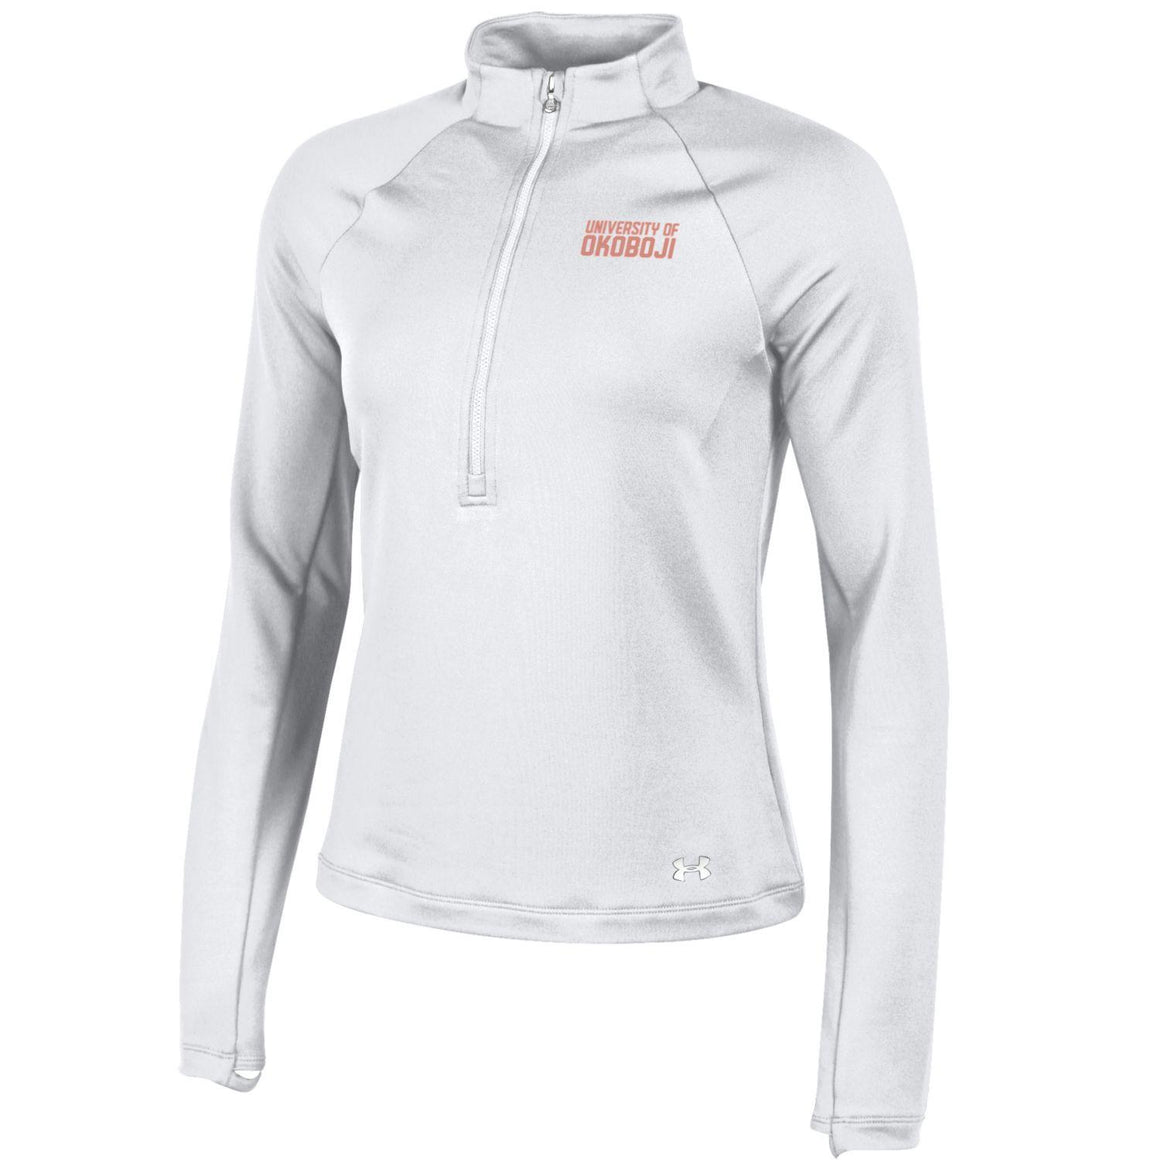 Ladies OKOBOJI Under Armour 1/4 Zip - White